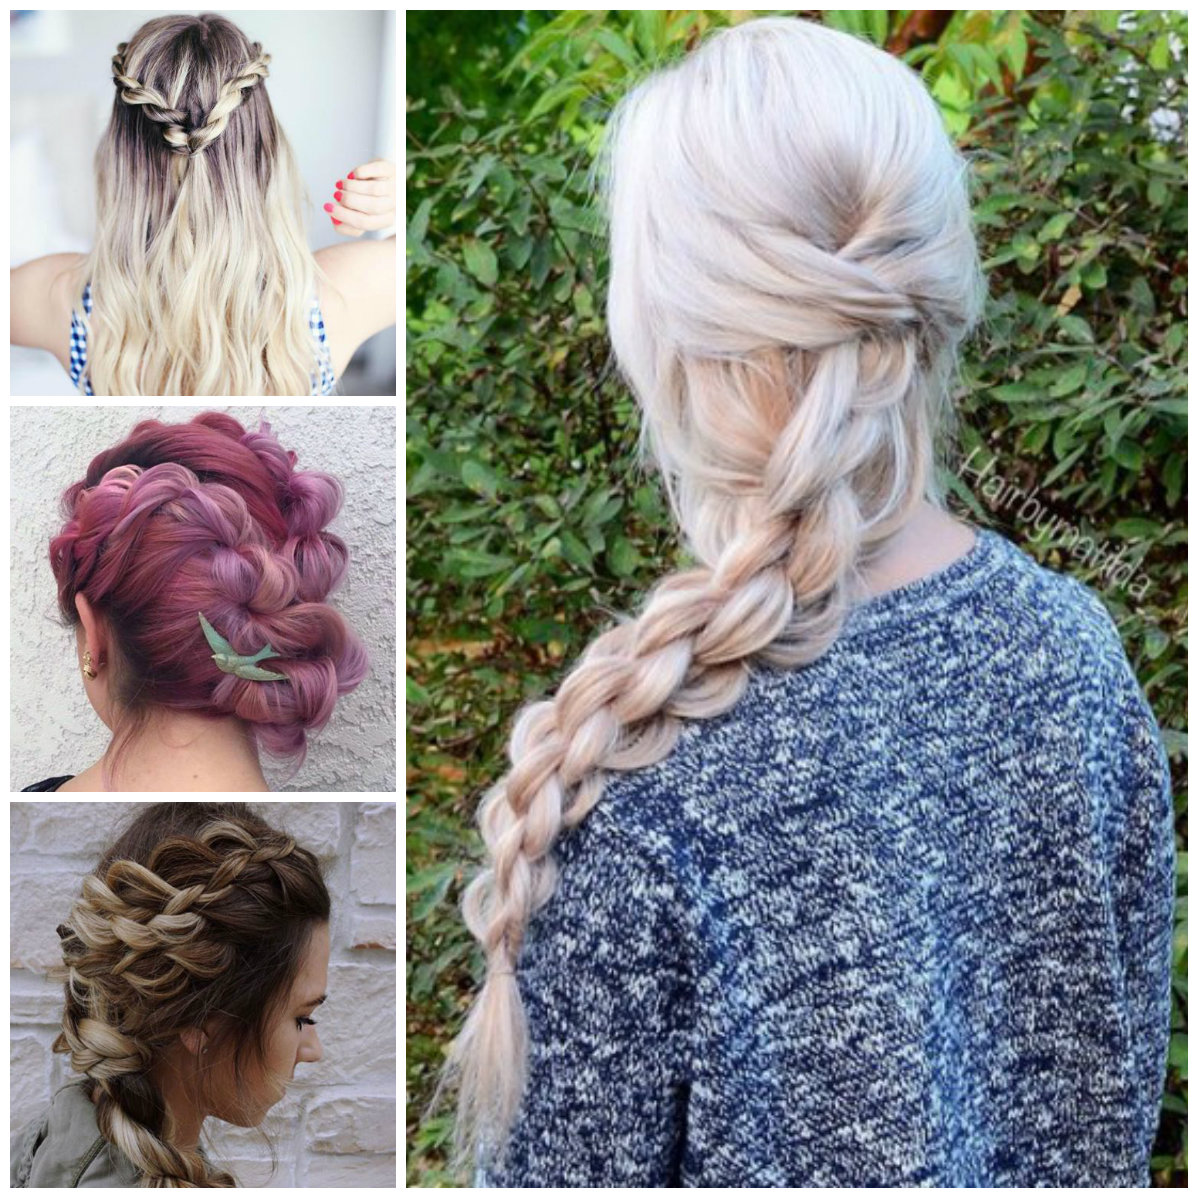 Inspiring Rope Braid Styles